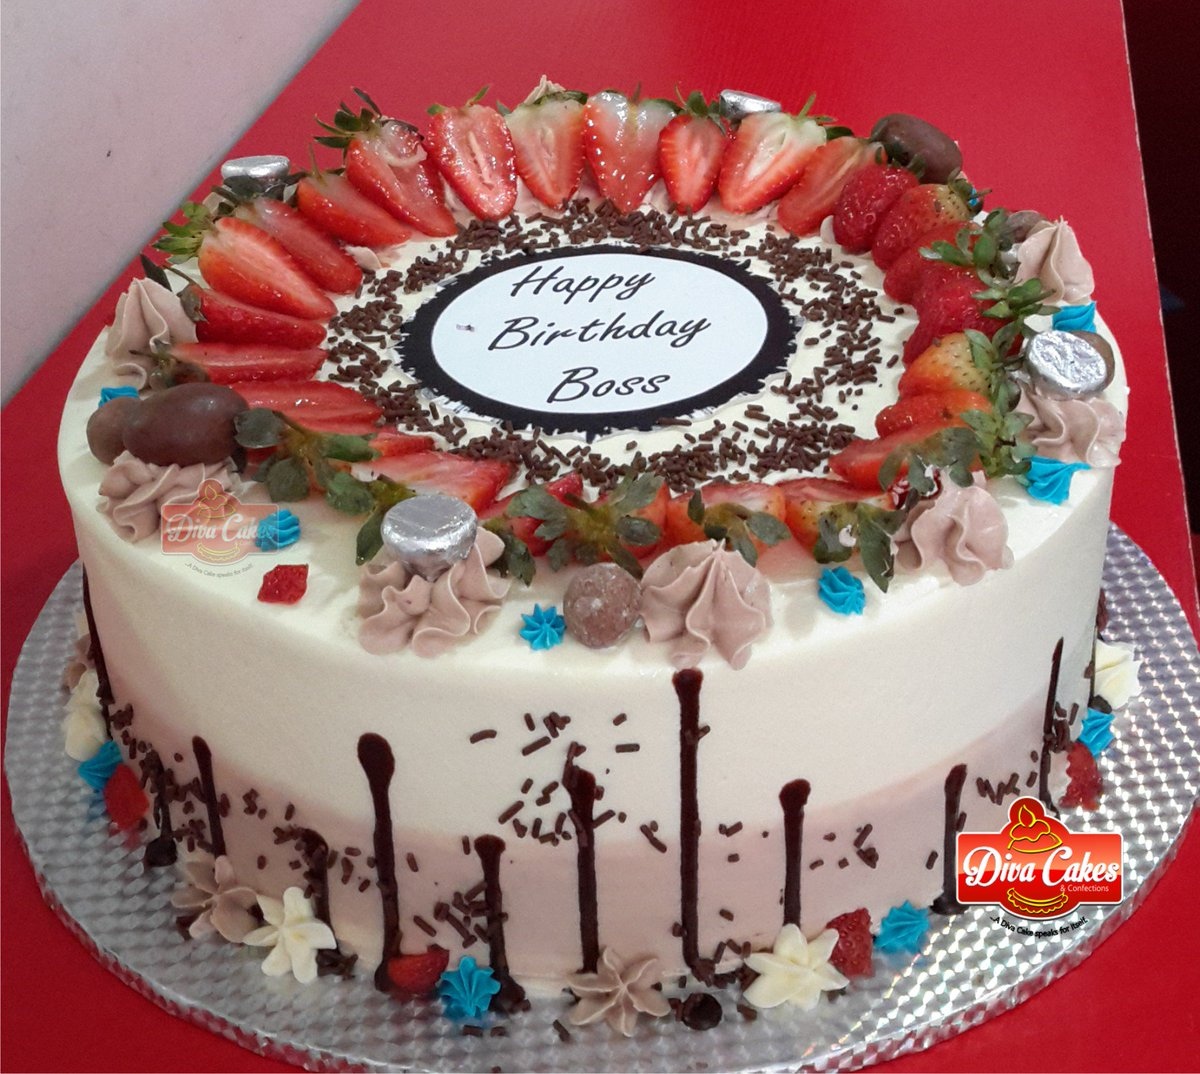 Diva Cakes Confections Divacakesng Twitter